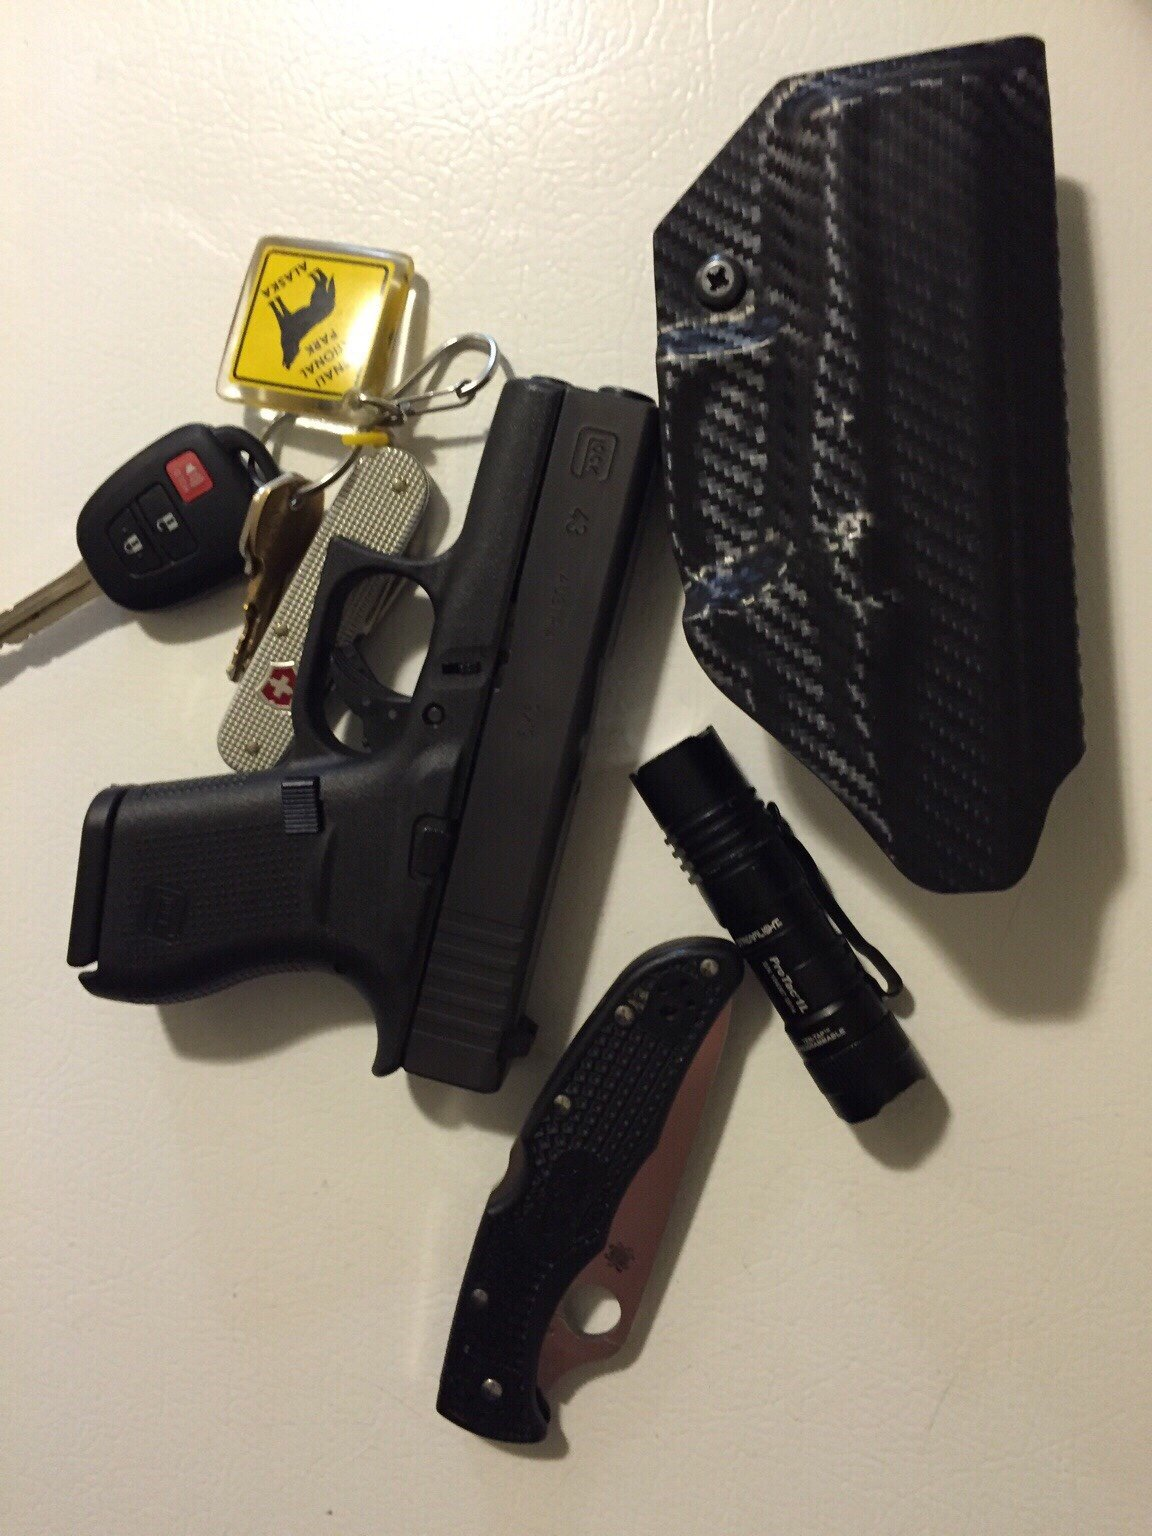 New G43 today - Glock Forum